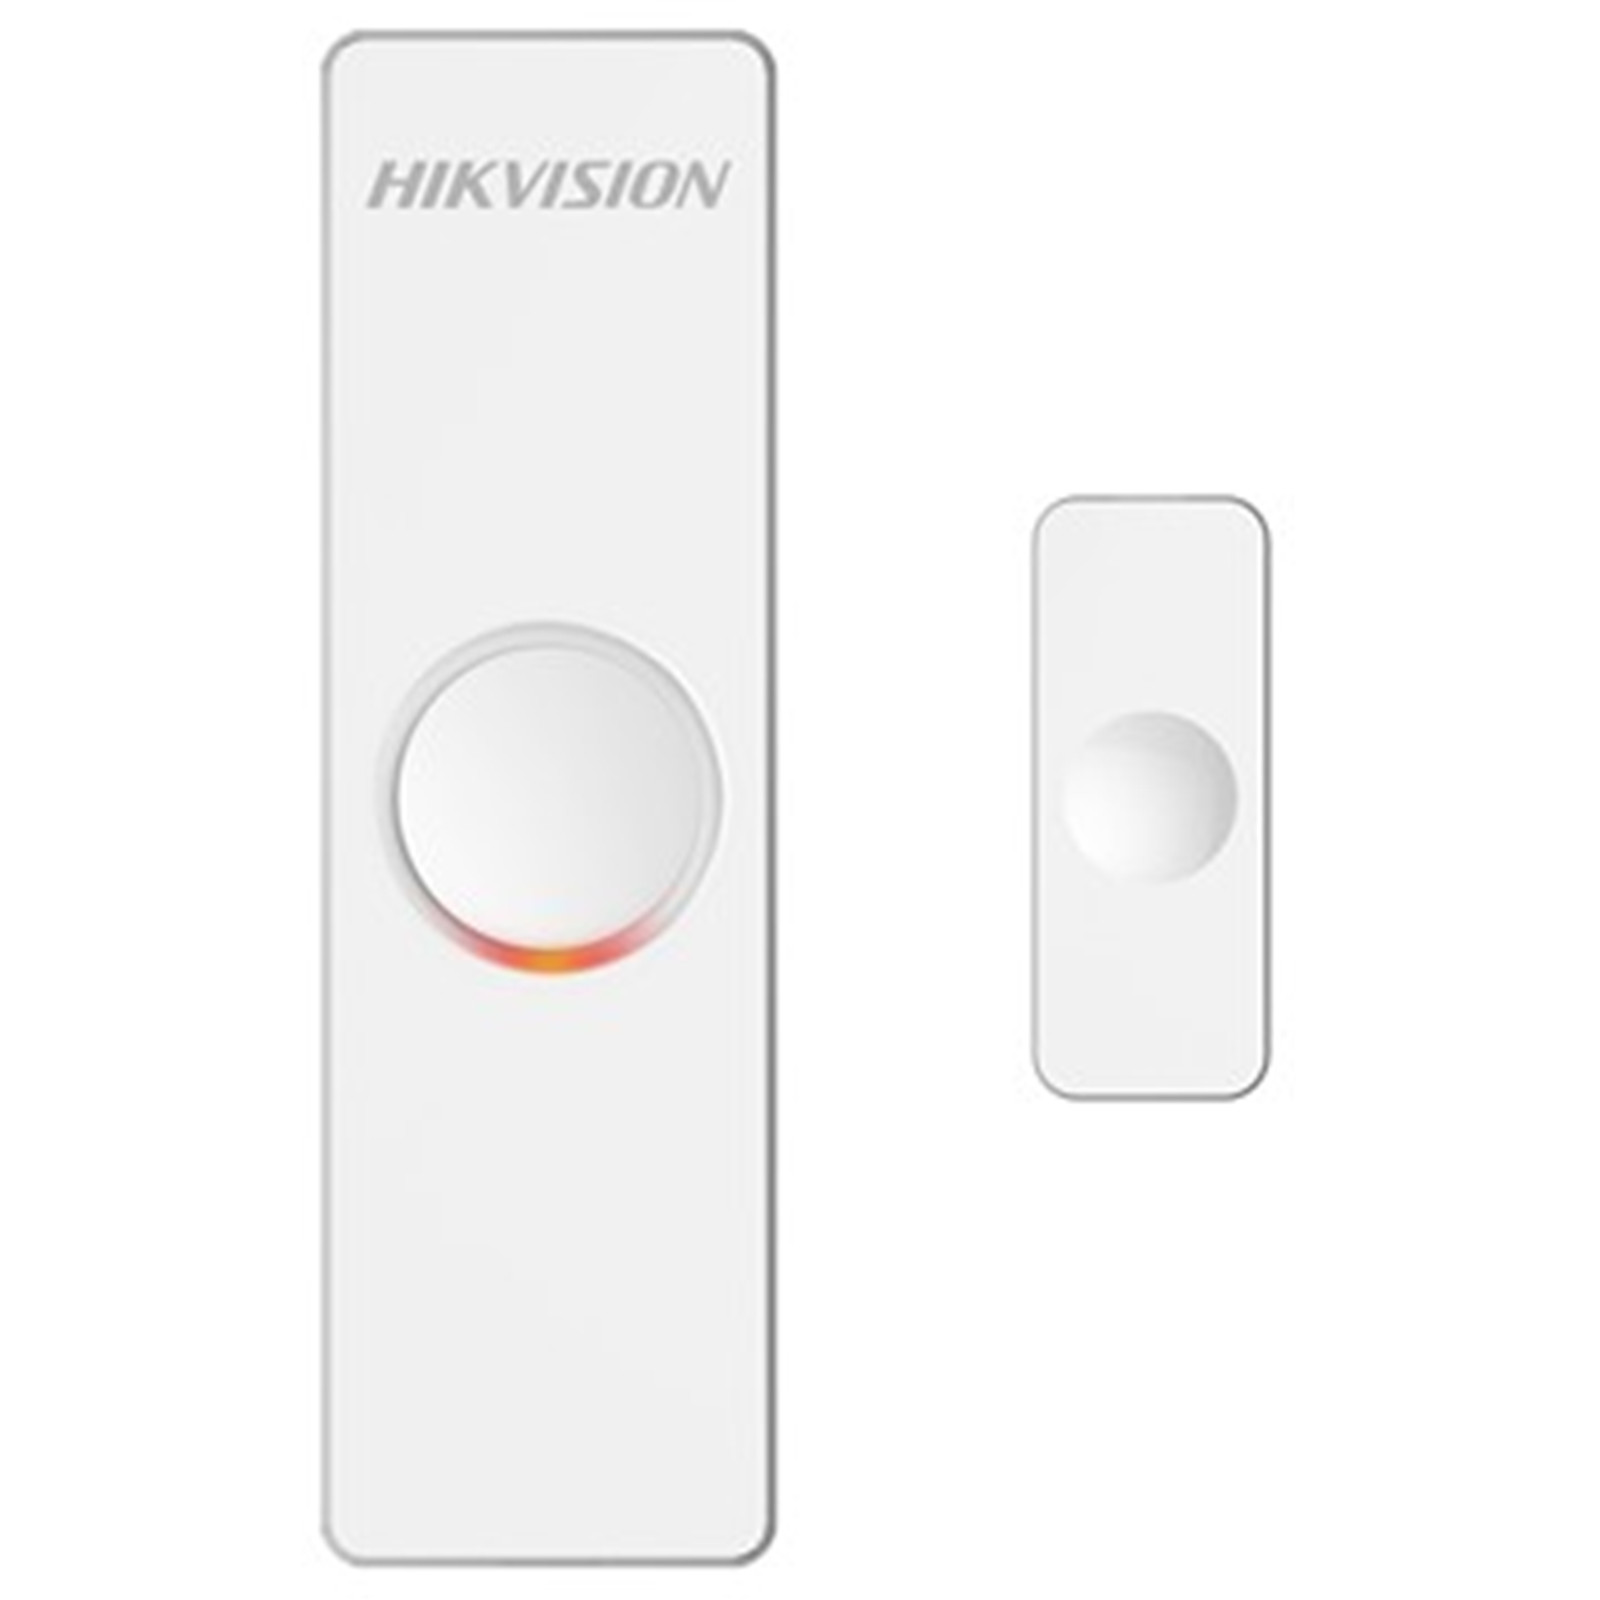 Buy the HIKVISION DS-PD1-MC-WWS Wireless Magenetic Door